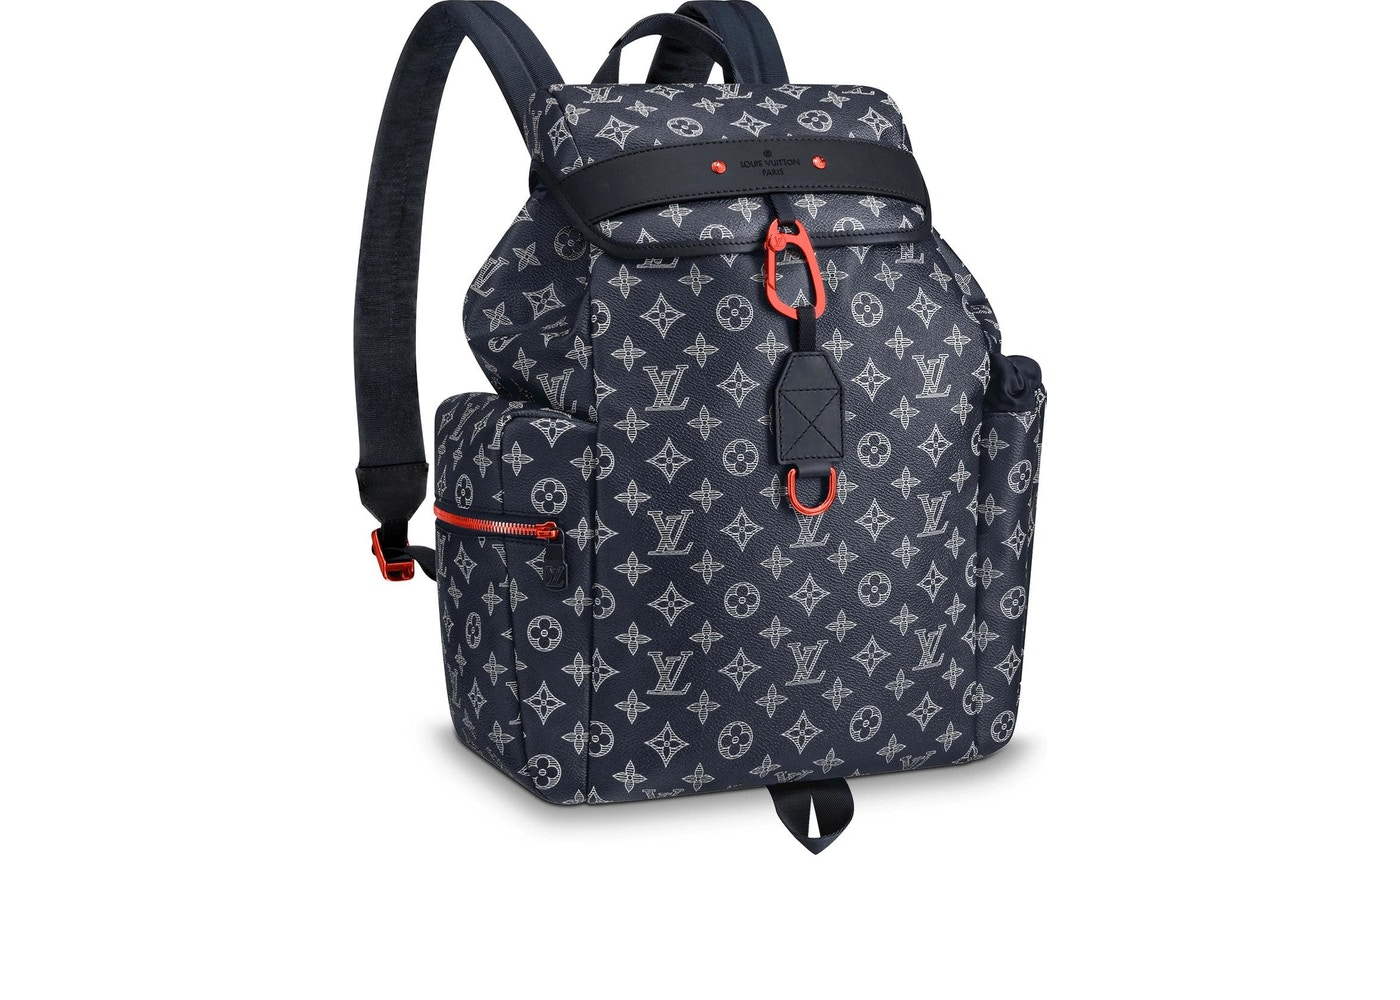 62fa6e525f58 Louis Vuitton Discovery Backpack Monogram Upside Down Ink Navy. Monogram Upside  Down Ink Navy